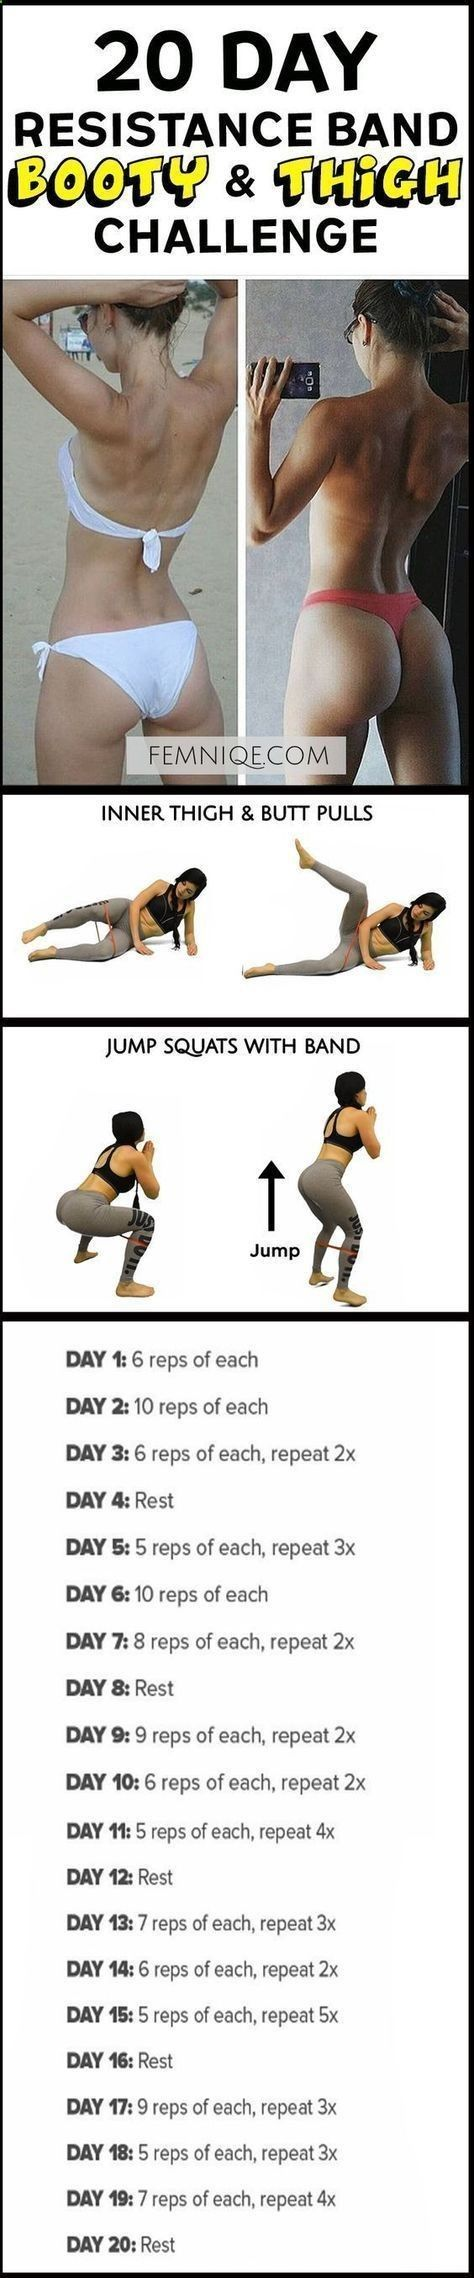 Day Hourglass Figure AntiAging Workout Plan  Exercise routines